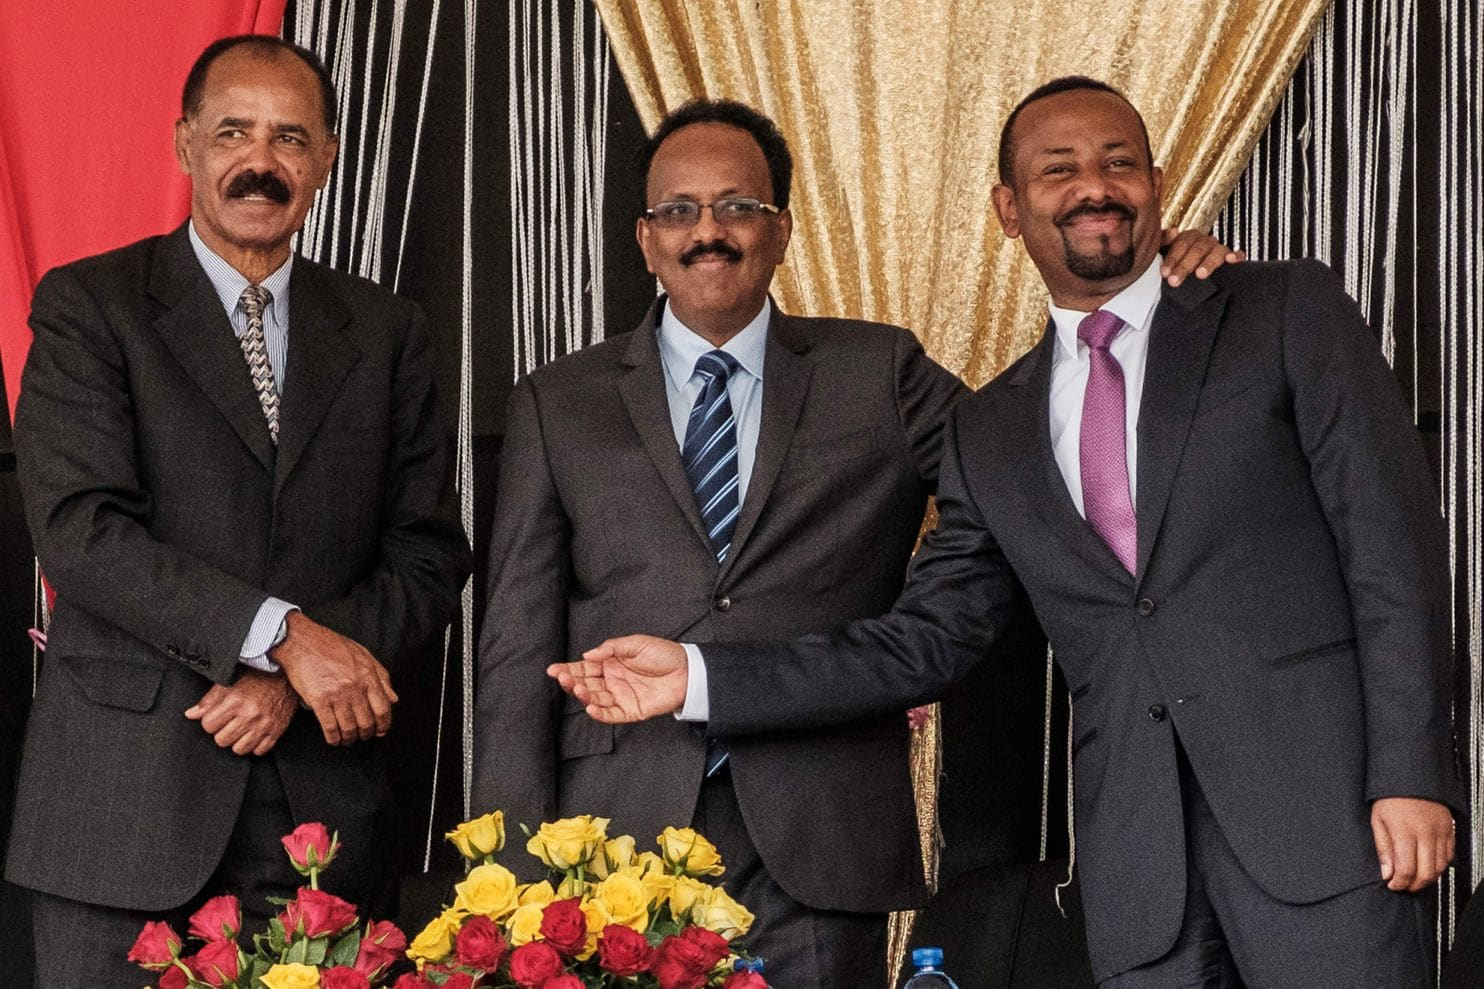 The Horn of Africa recognizes Eritrea's credibility and statecraft